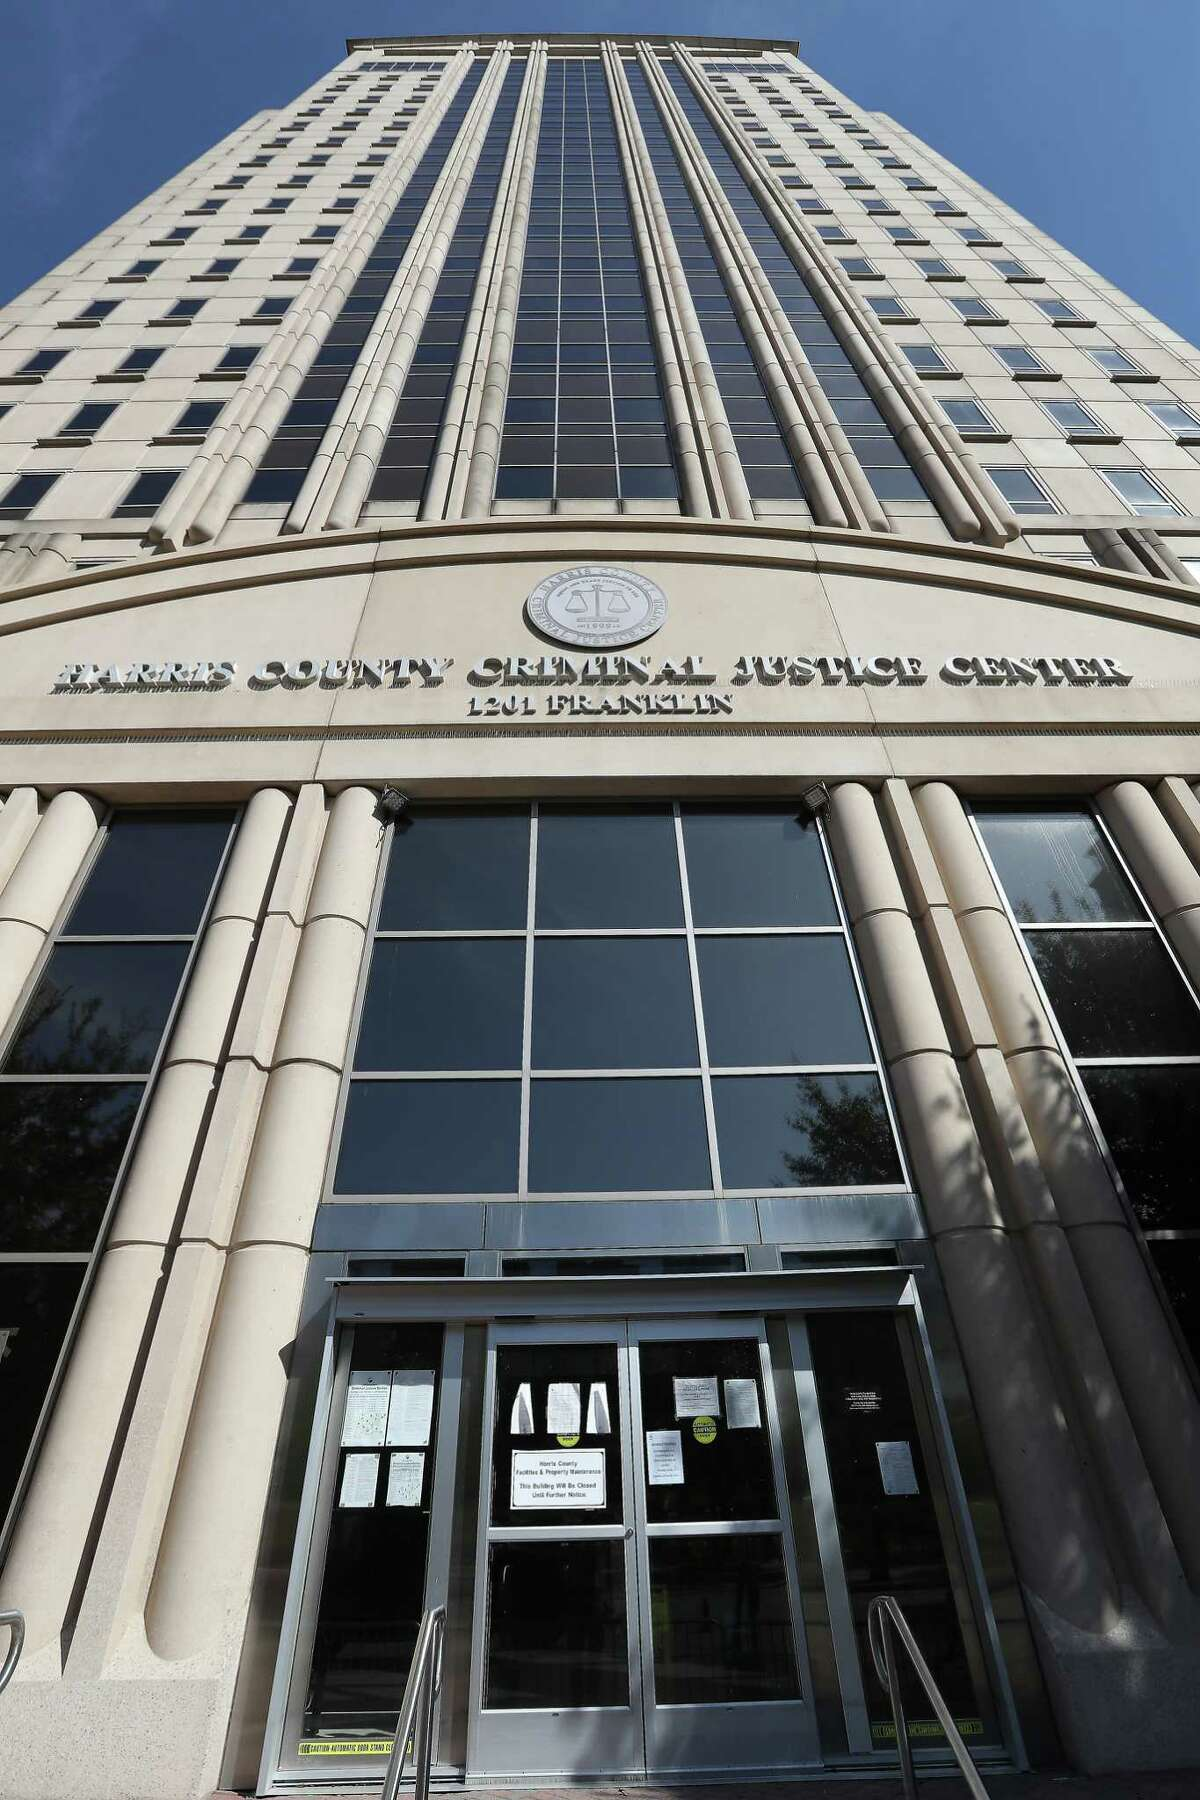 Hurricane Harvey shuttered the Harris County Criminal Courthouse at 1201 Franklin, as did Tropical Storm Allison. Consultants are studying what to do with the structure.